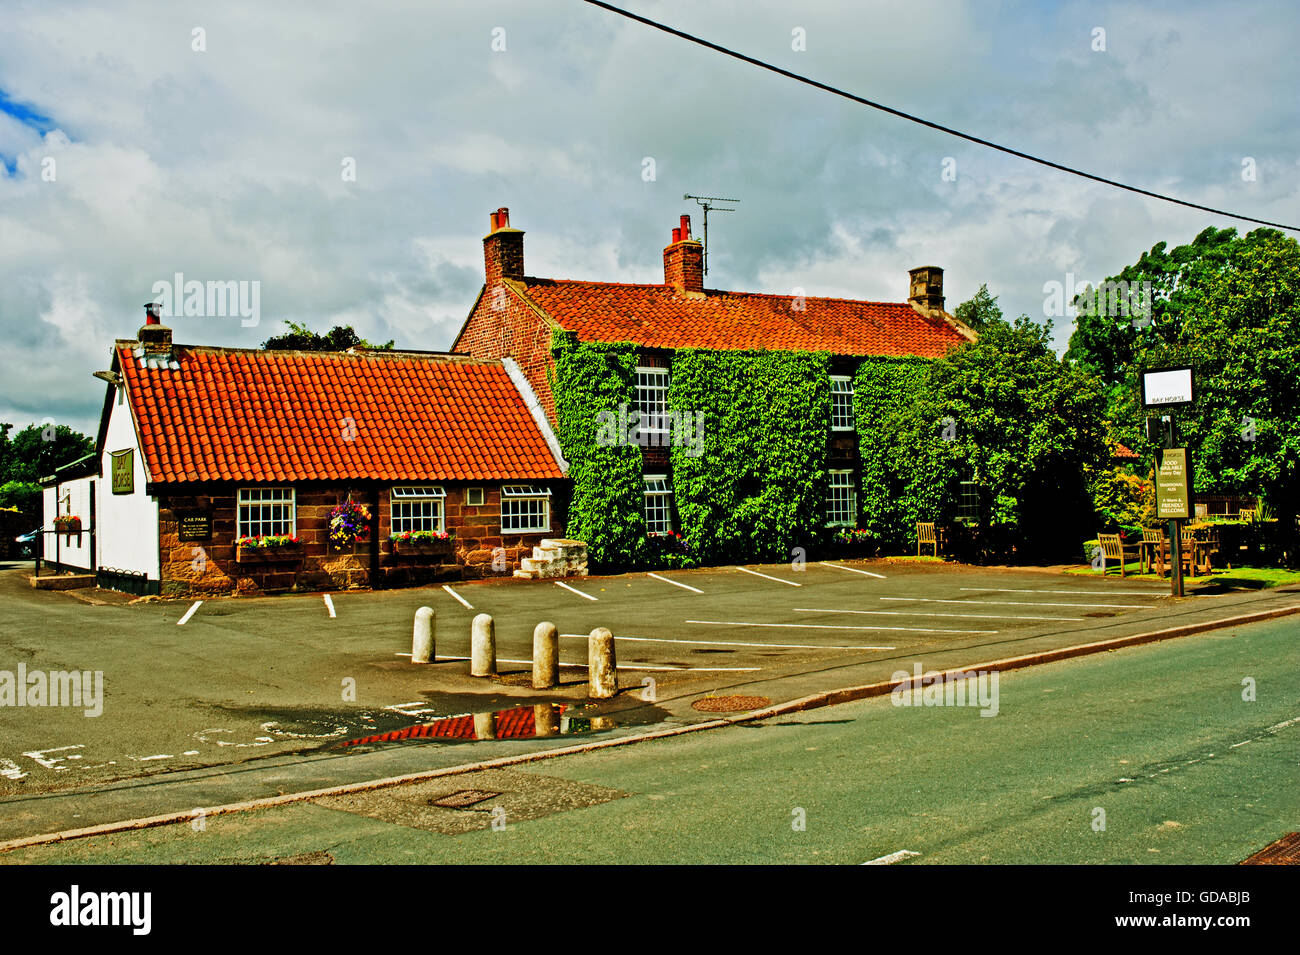 The Bay Horse, Great Broughton, North Yorkshire - Stock Image